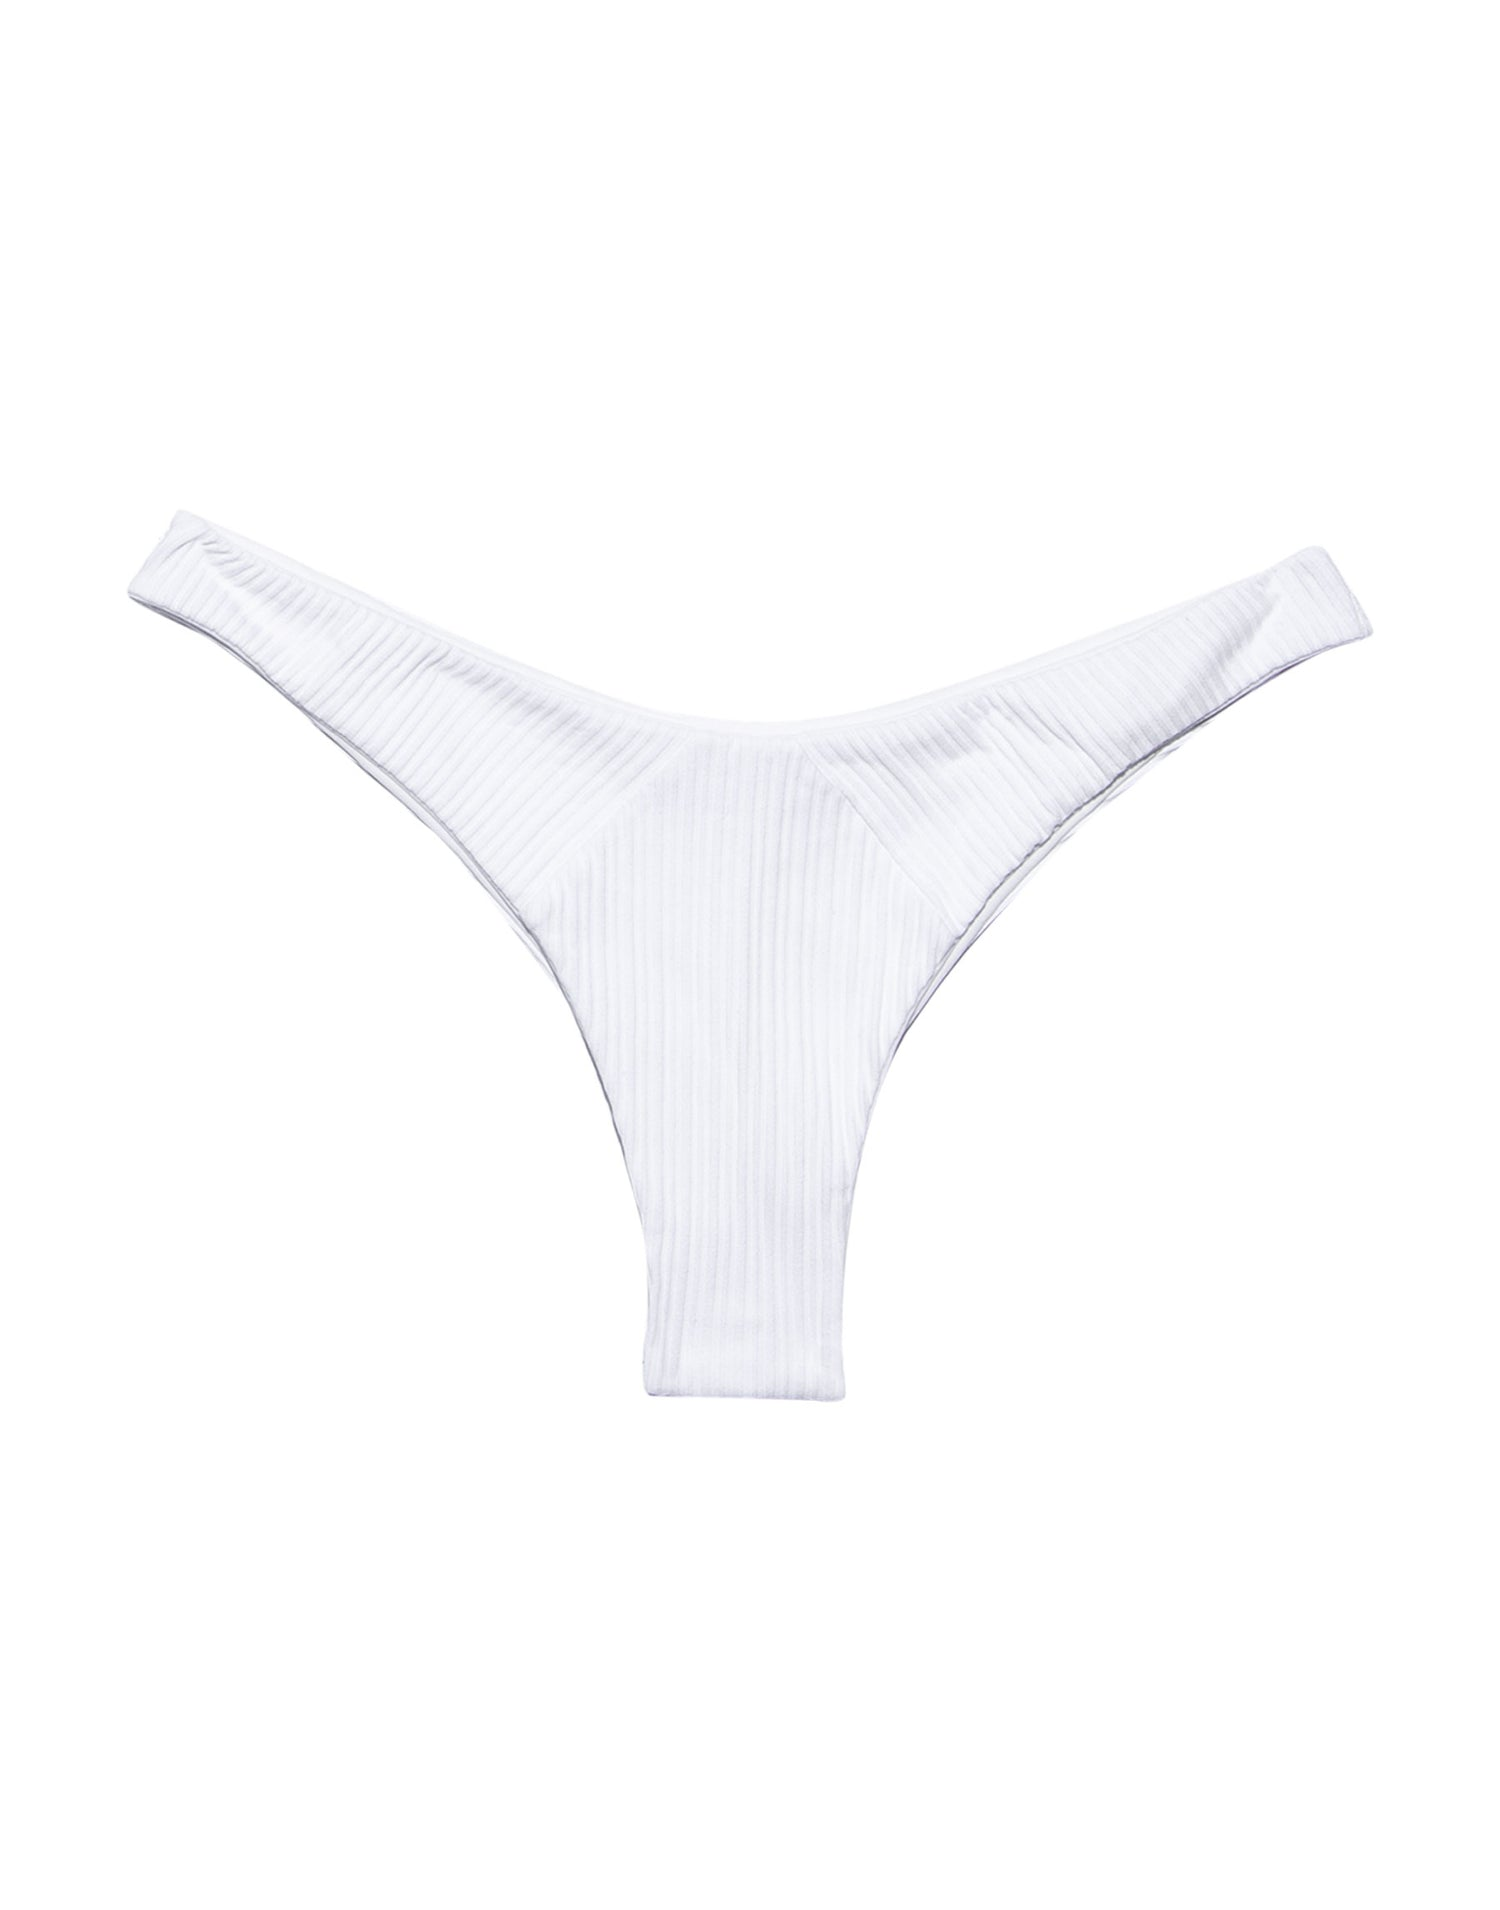 Sydney Tango Bikini Bottom in White Rib - product view